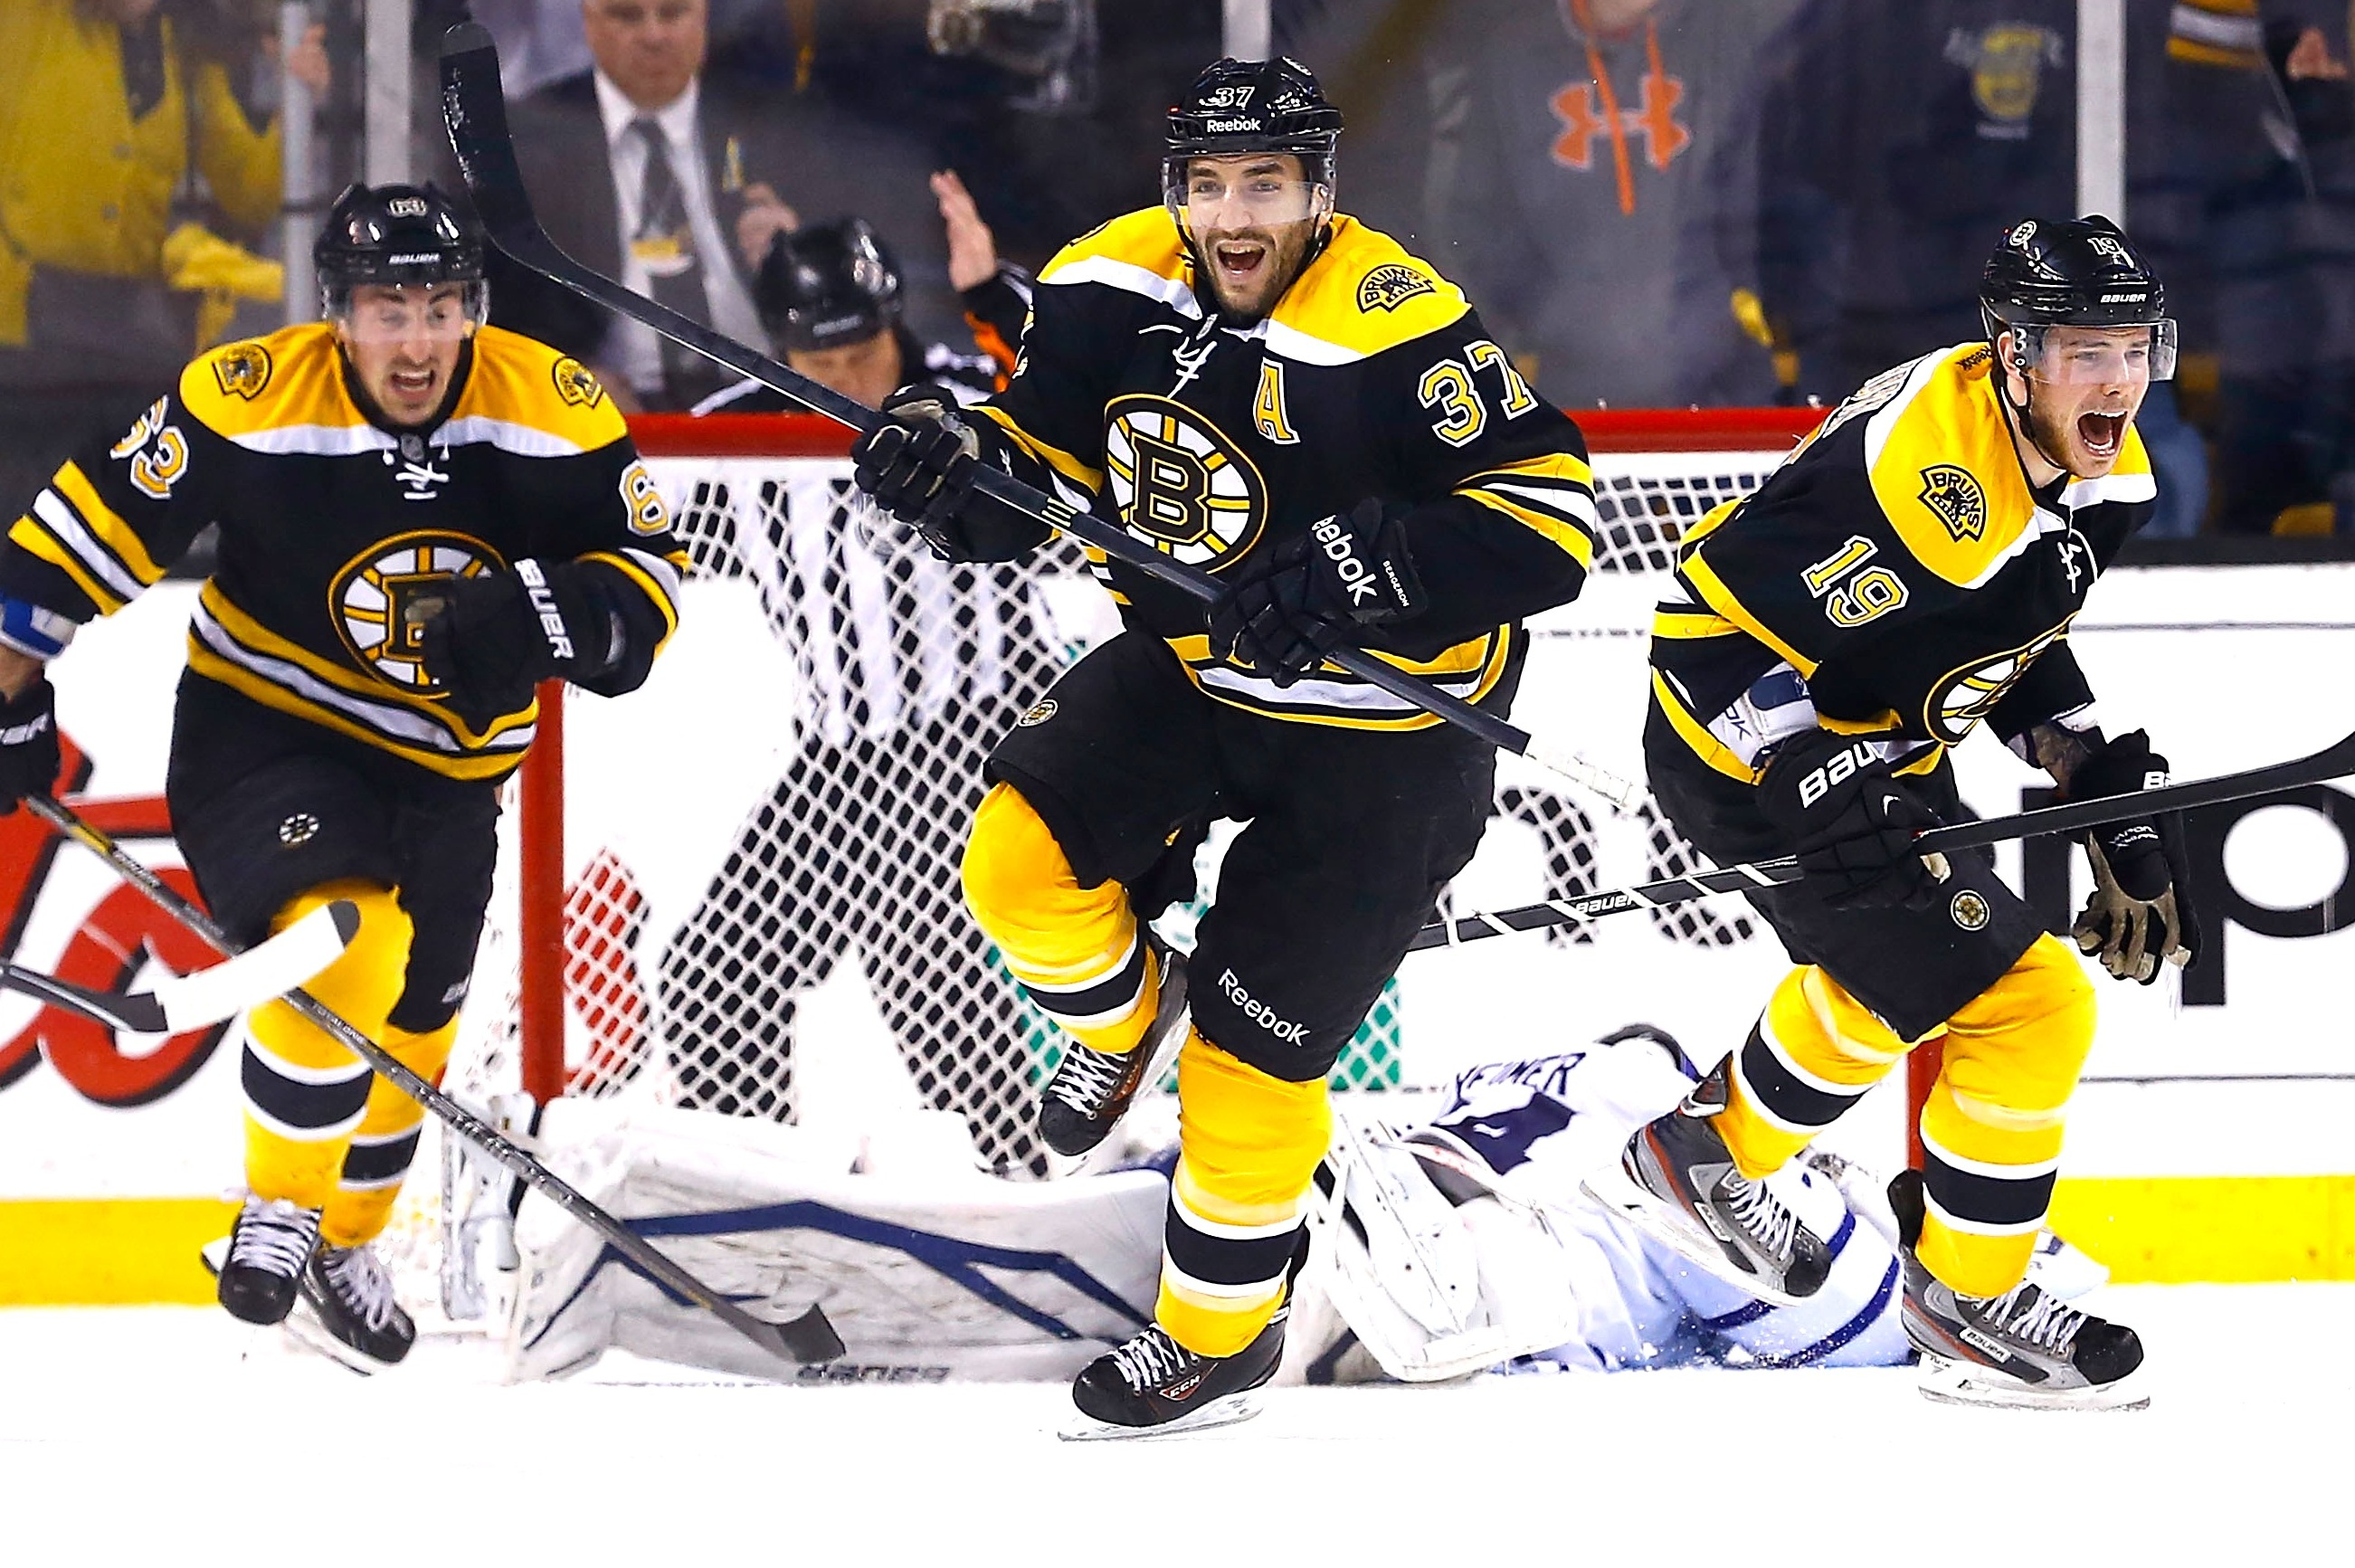 Maple Leafs Vs Bruins Game 7 Recap Twitter Reaction And Analysis Bleacher Report Latest News Videos And Highlights